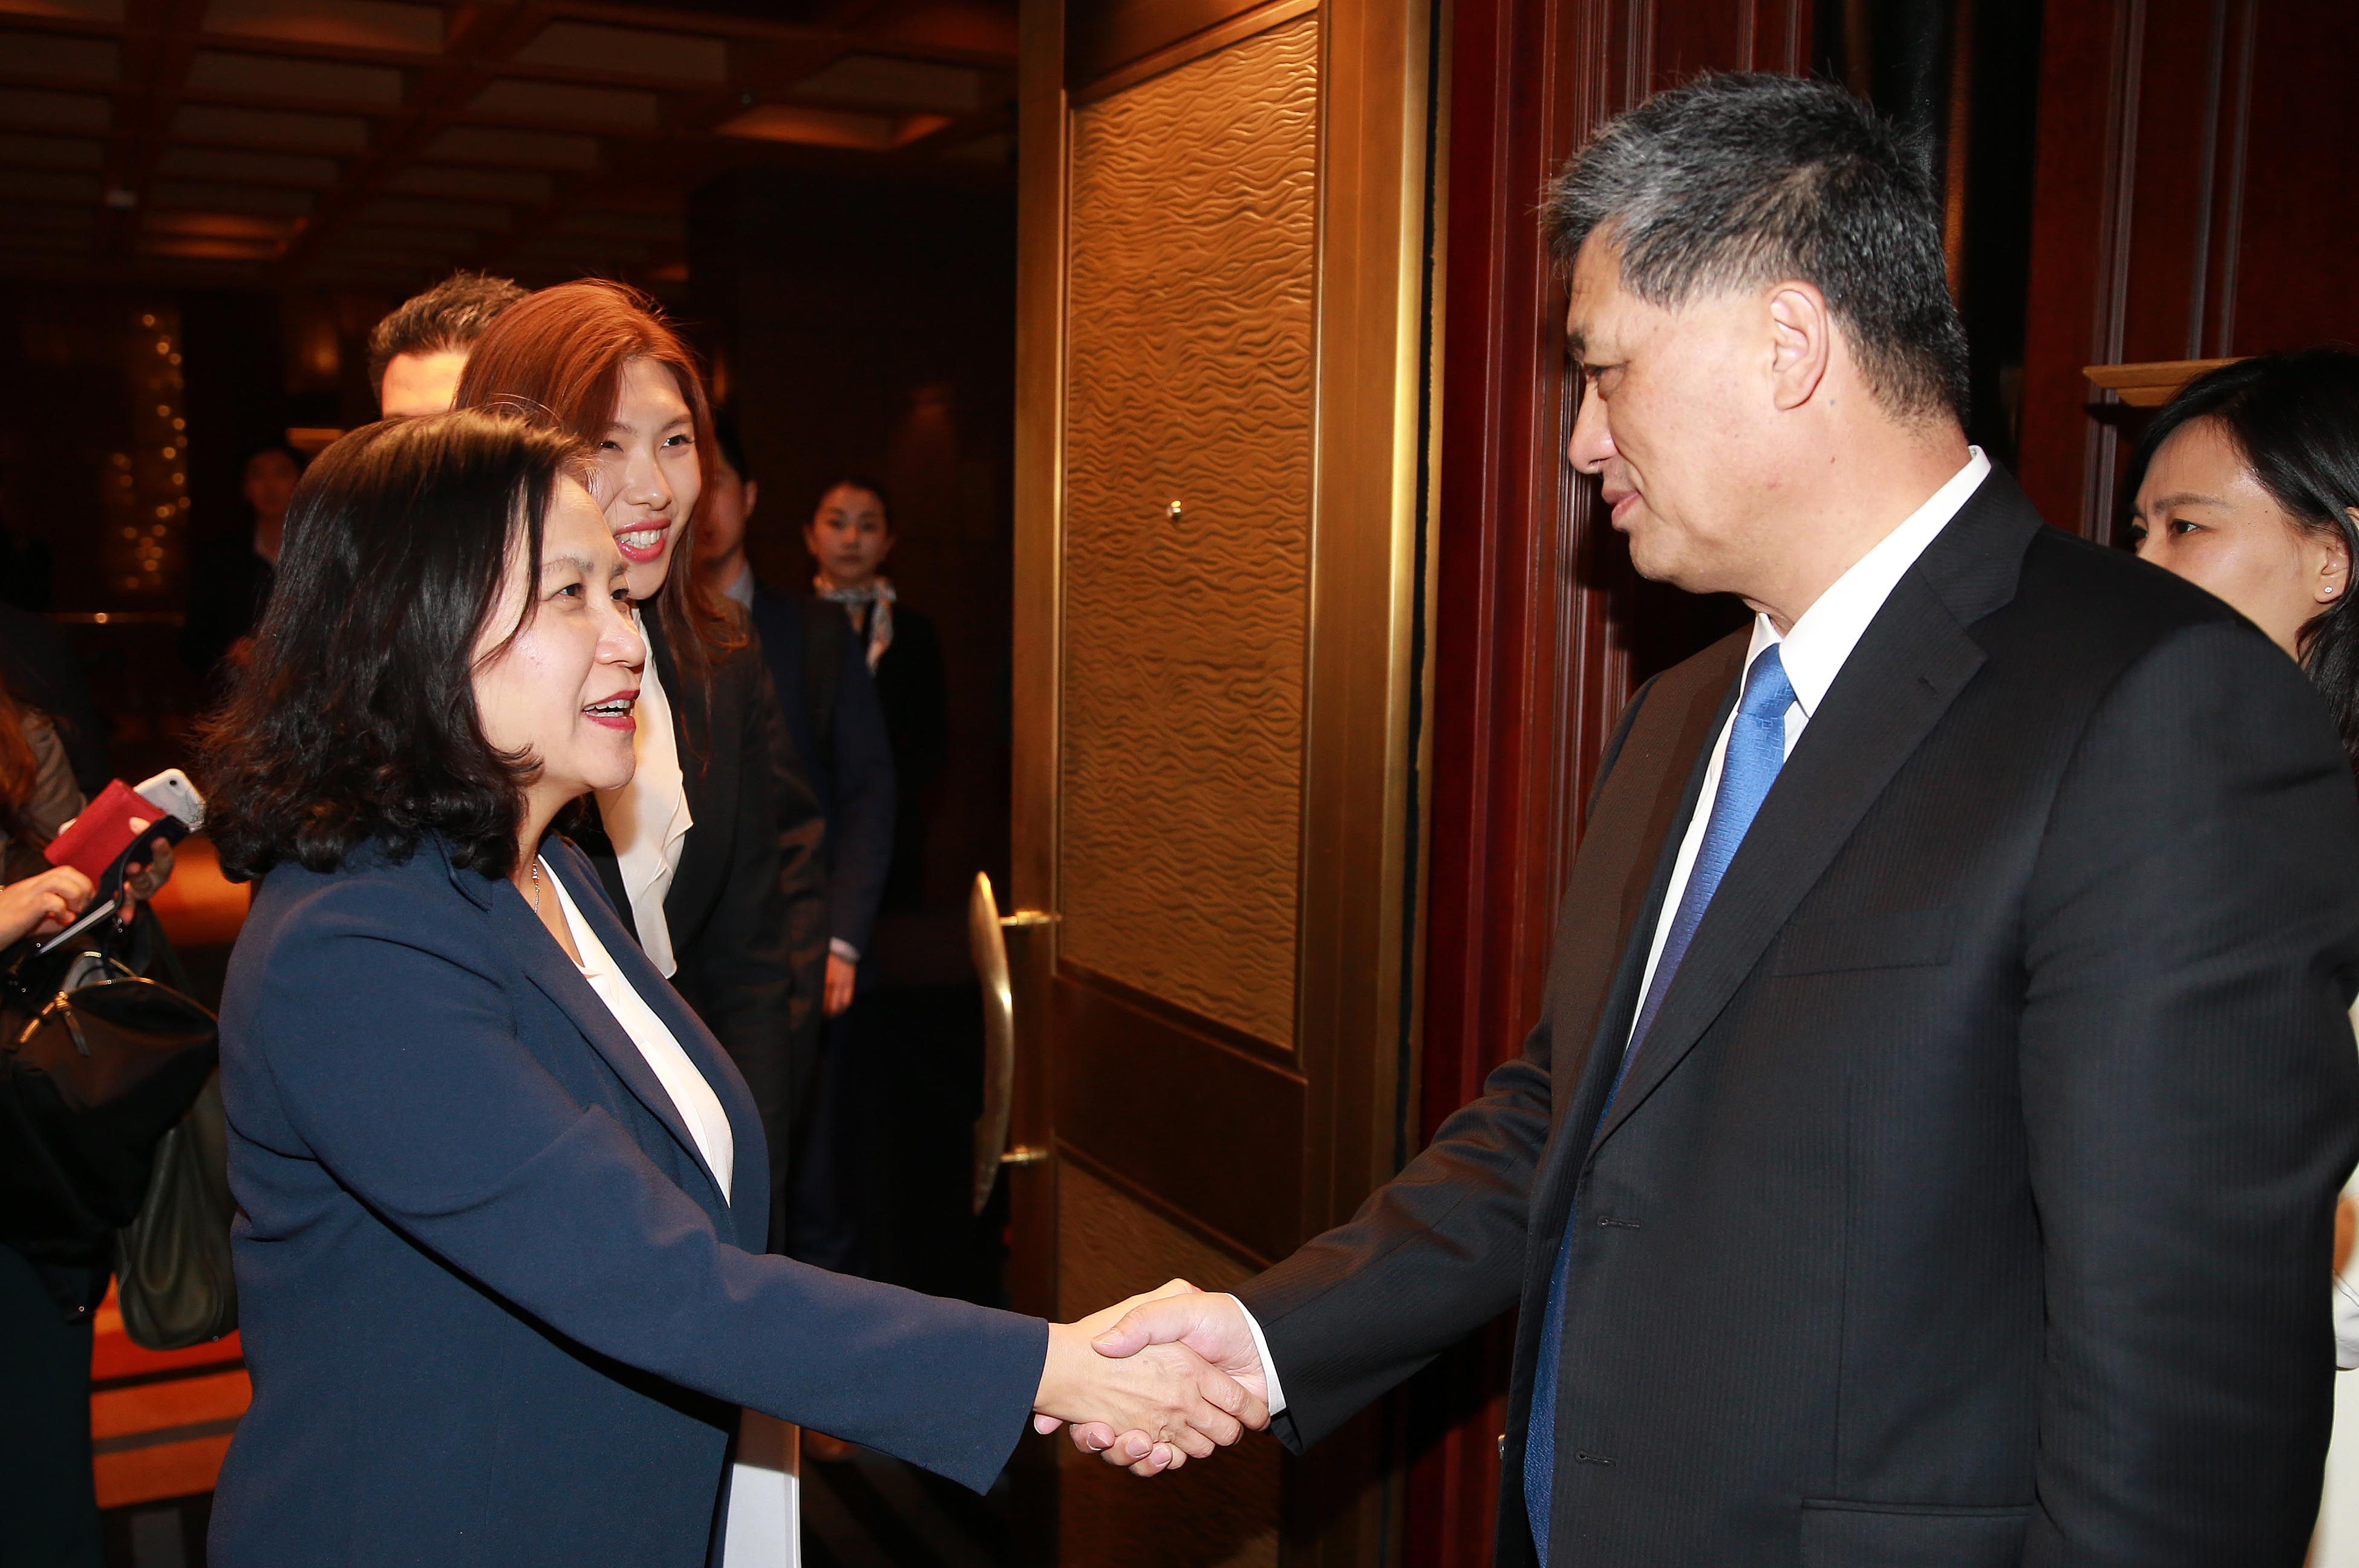 Trade Minister Yoo discusses expanding economic ties with China's Guangdong Governor  Image 0